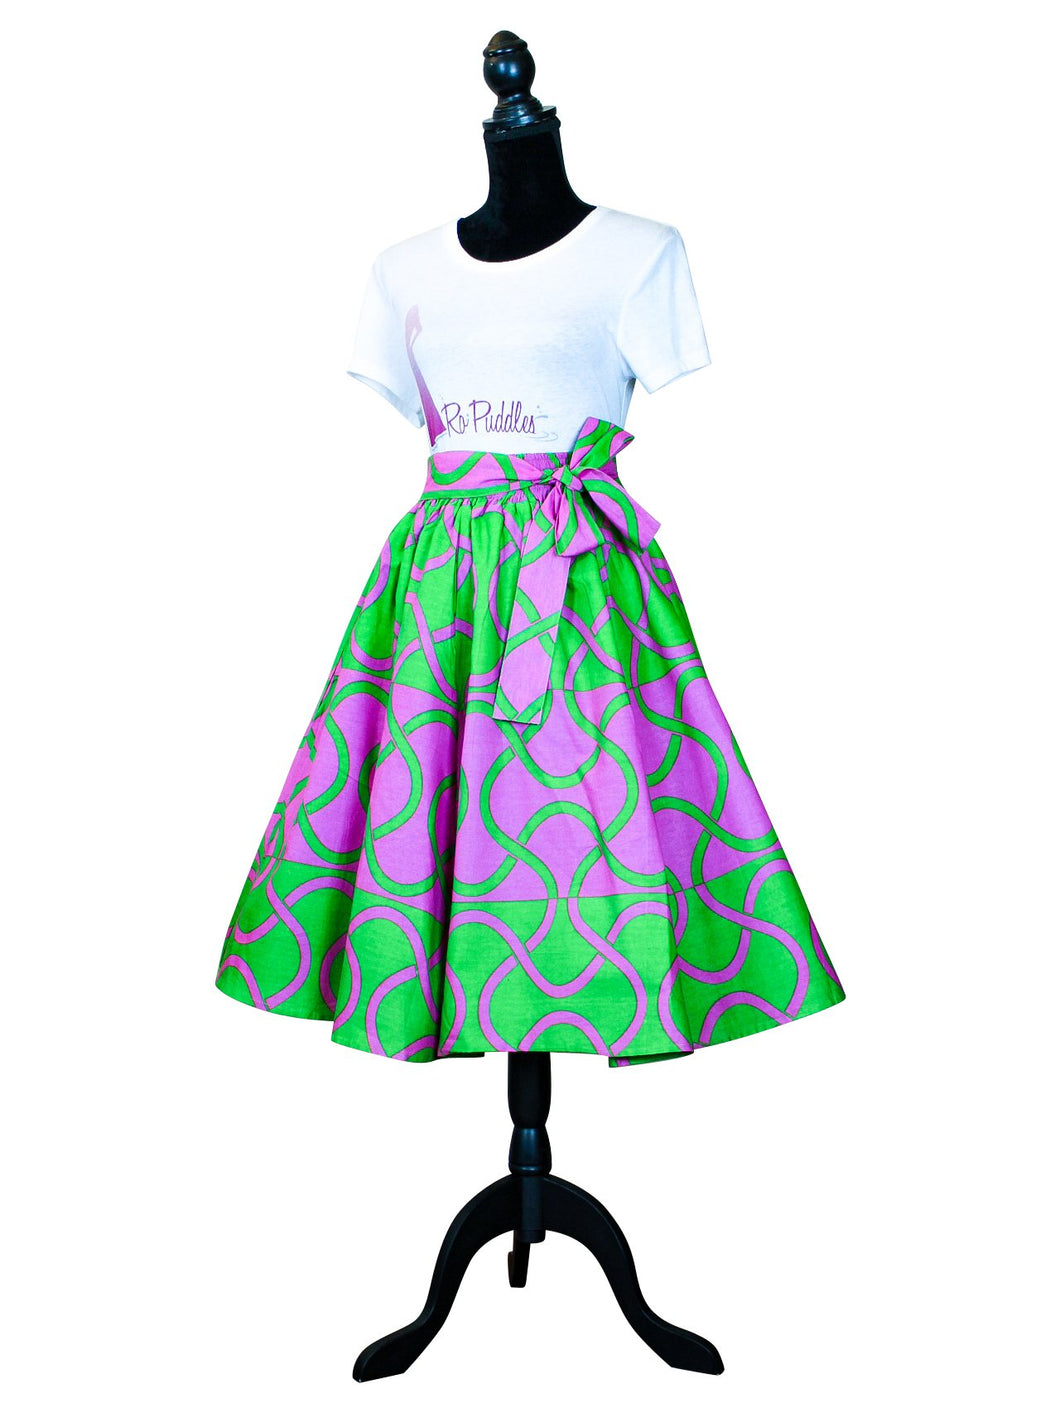 Fashions by RoPuddles African Print Pink and Green Skirt